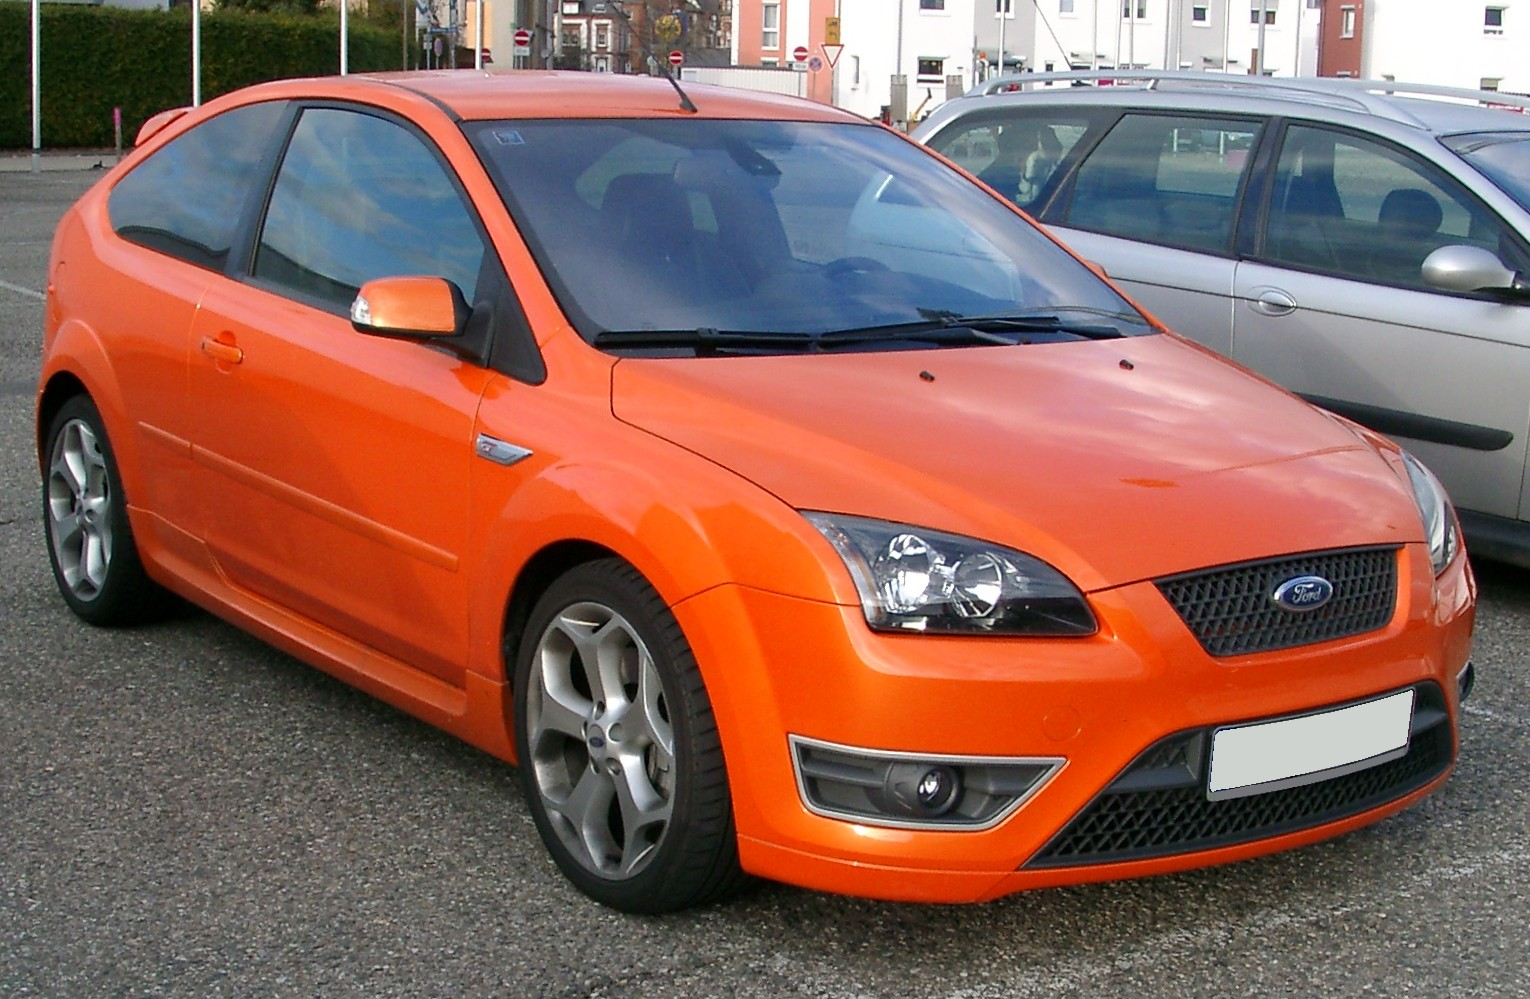 File:Ford Focus ST front 20071112.jpg